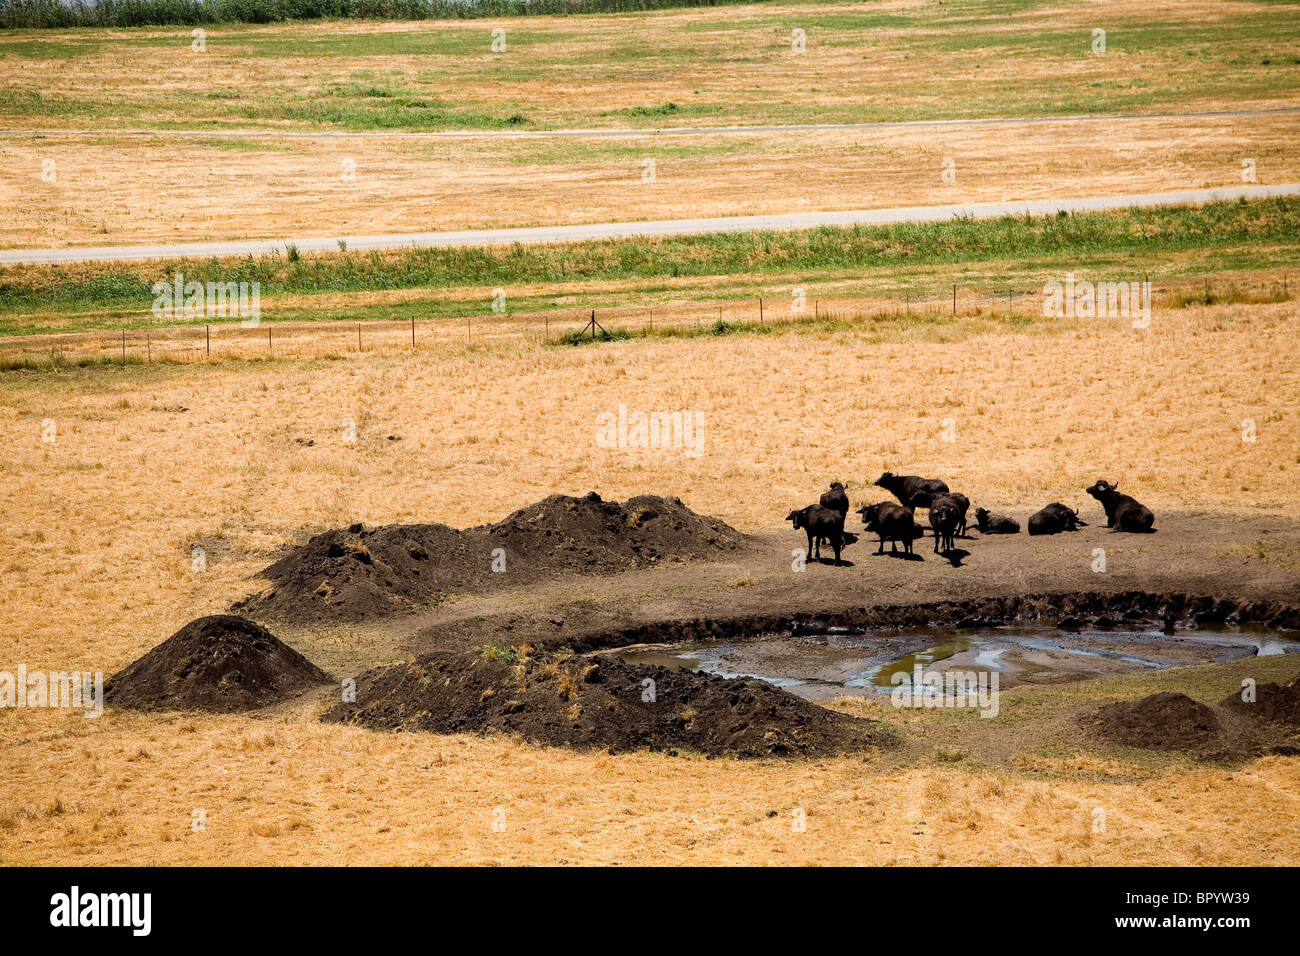 Aerial photograph of a water buffalo in the reservation of Hachula in the Upper Galilee - Stock Image